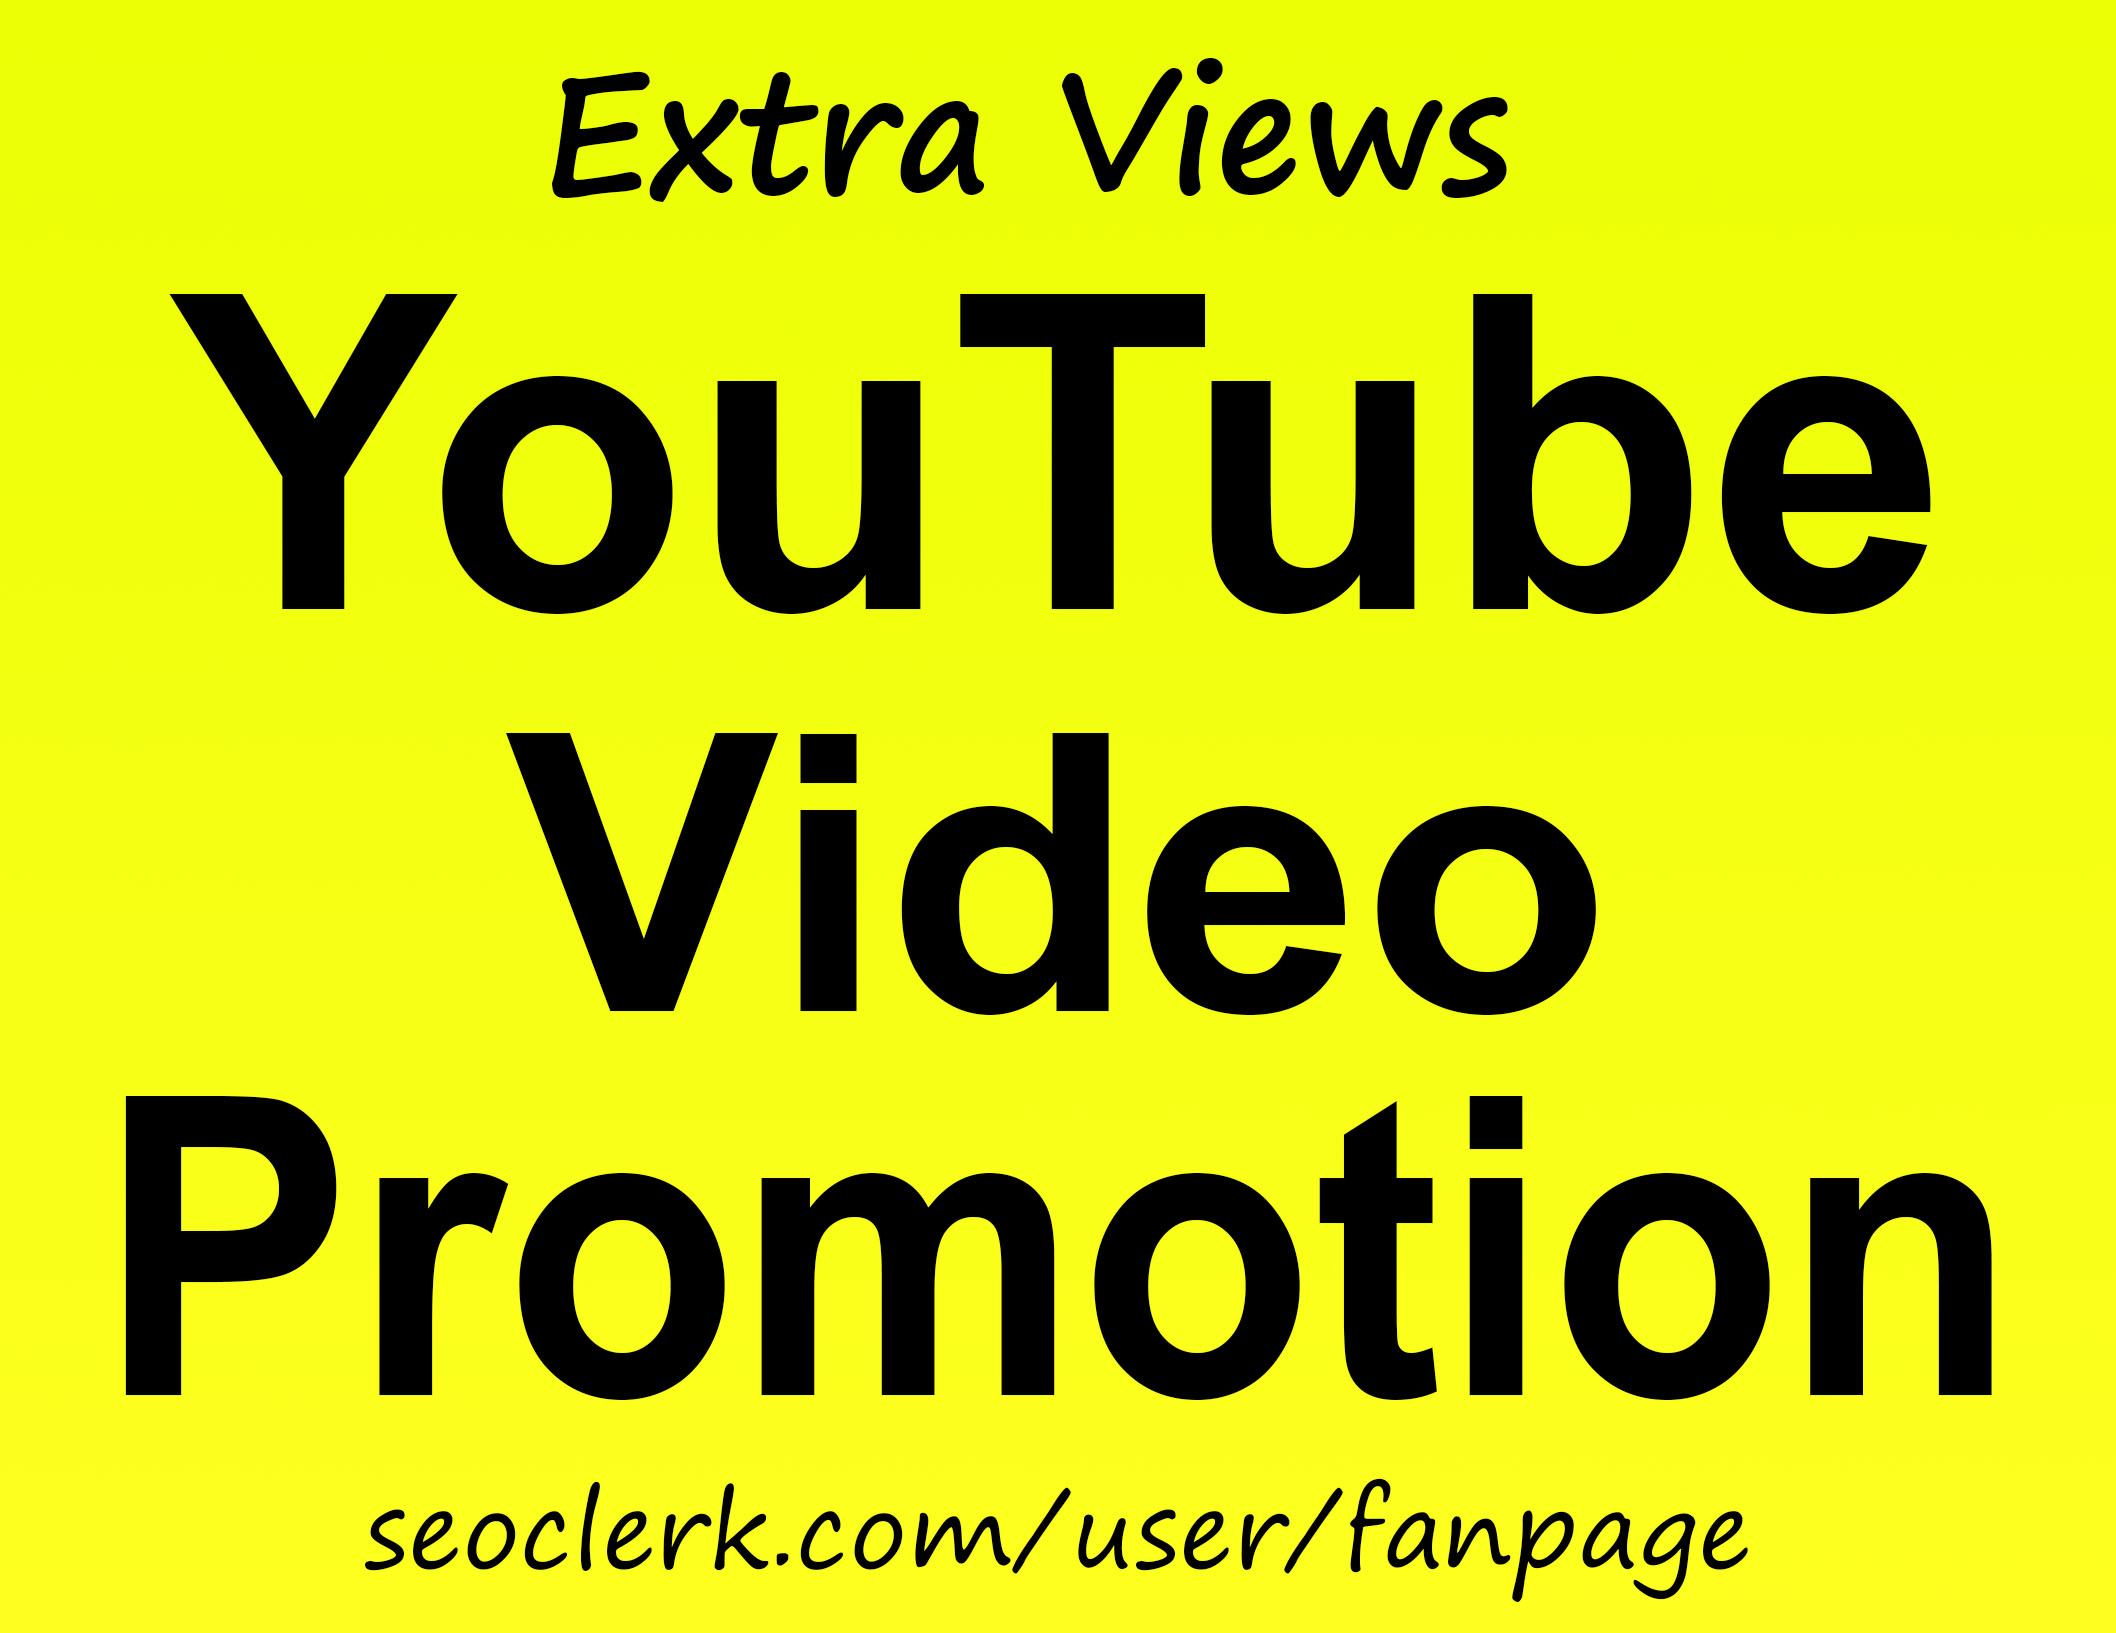 YouTube Video Real Promotion & Marketing Best For Ranking